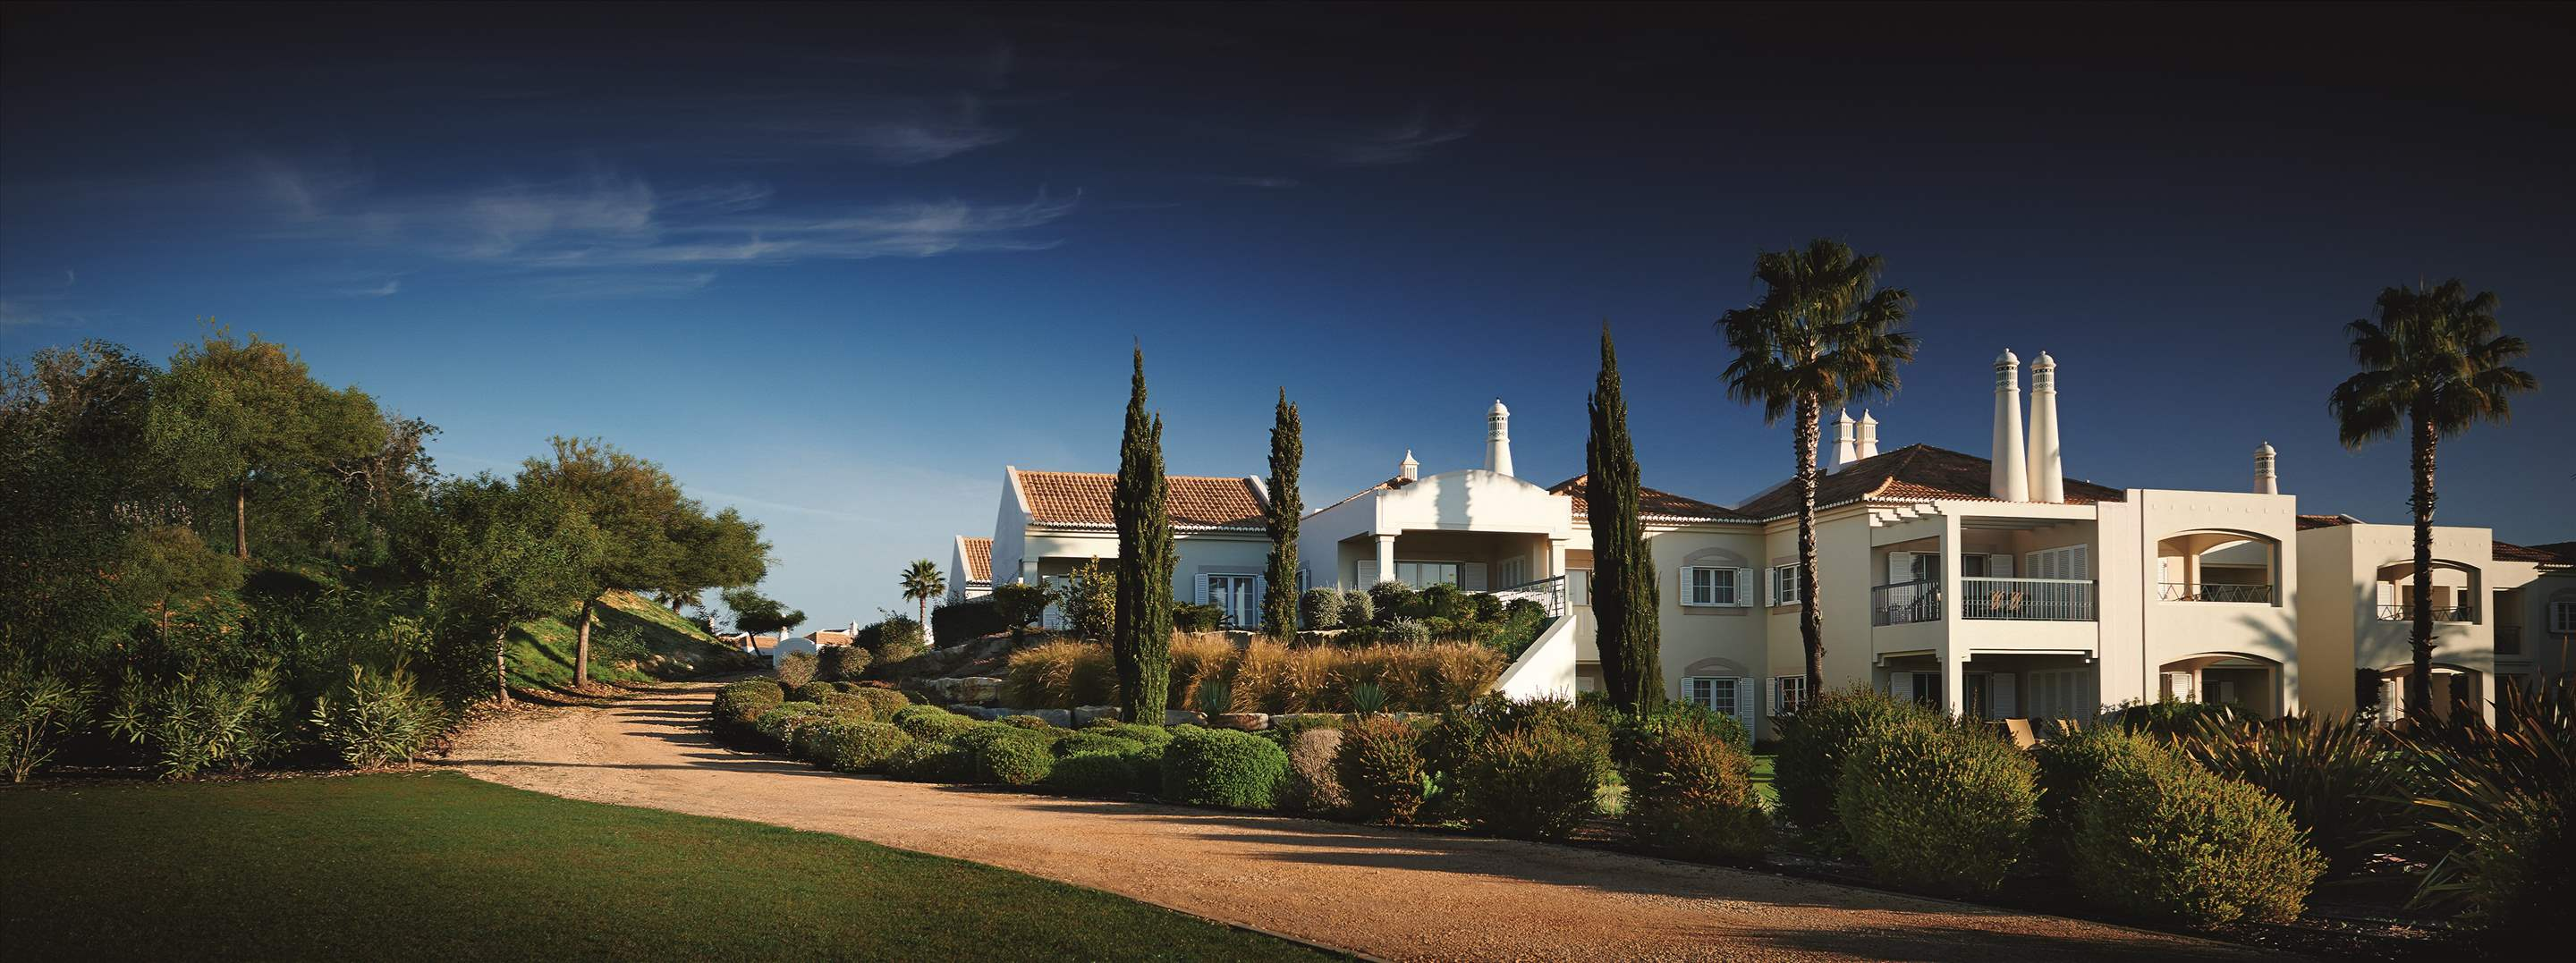 Vale dOliveiras Hotel Double/ Twin Room BB Basis, 1 bedroom hotel in Vale d'Oliveiras Resort & Spa, Algarve Photo #10